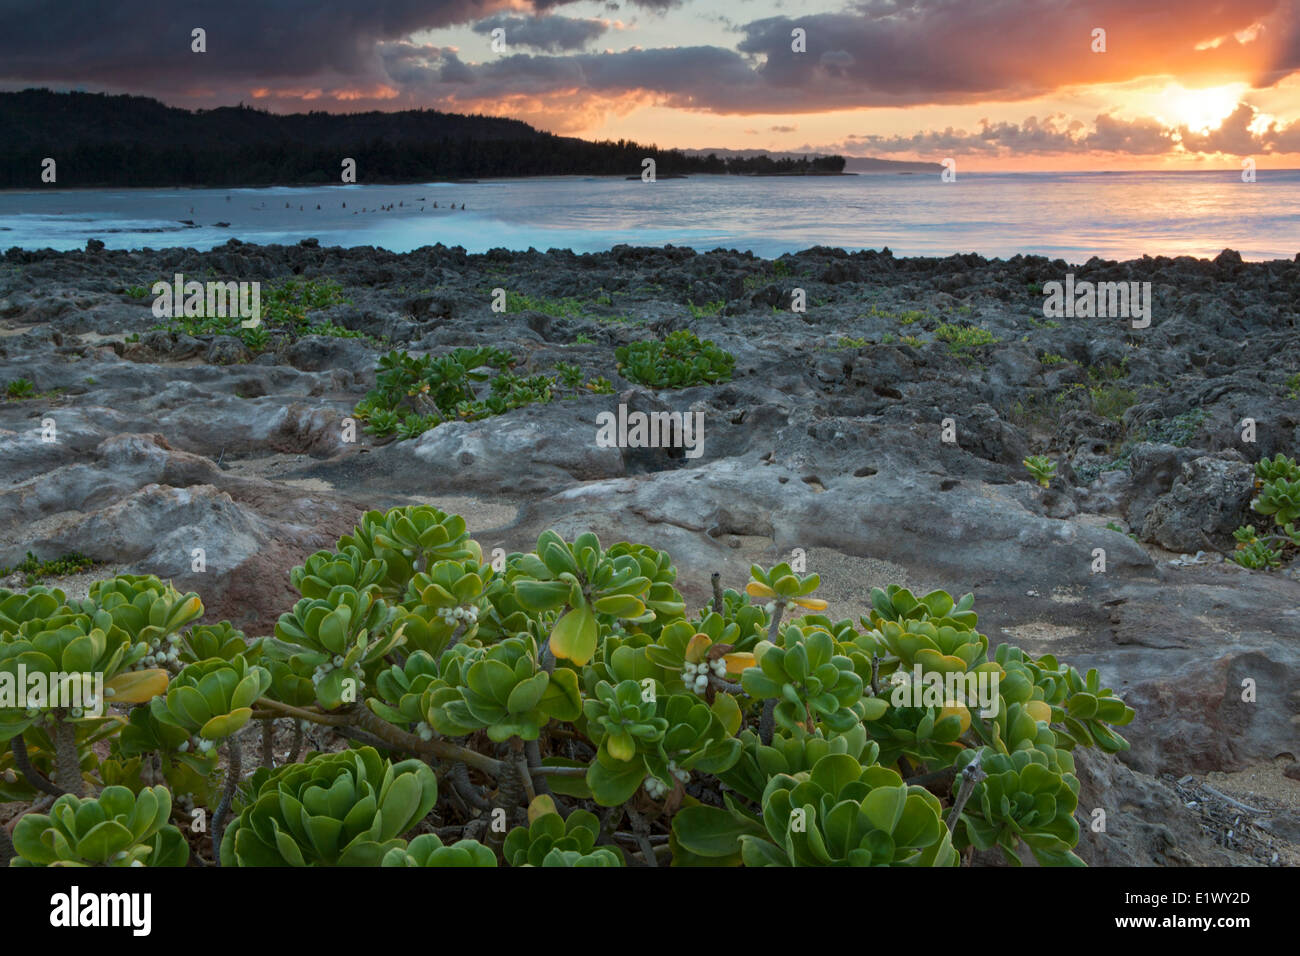 Sunset at Turtle Bay, Oahu, Hawai'i, United States of America - Stock Image